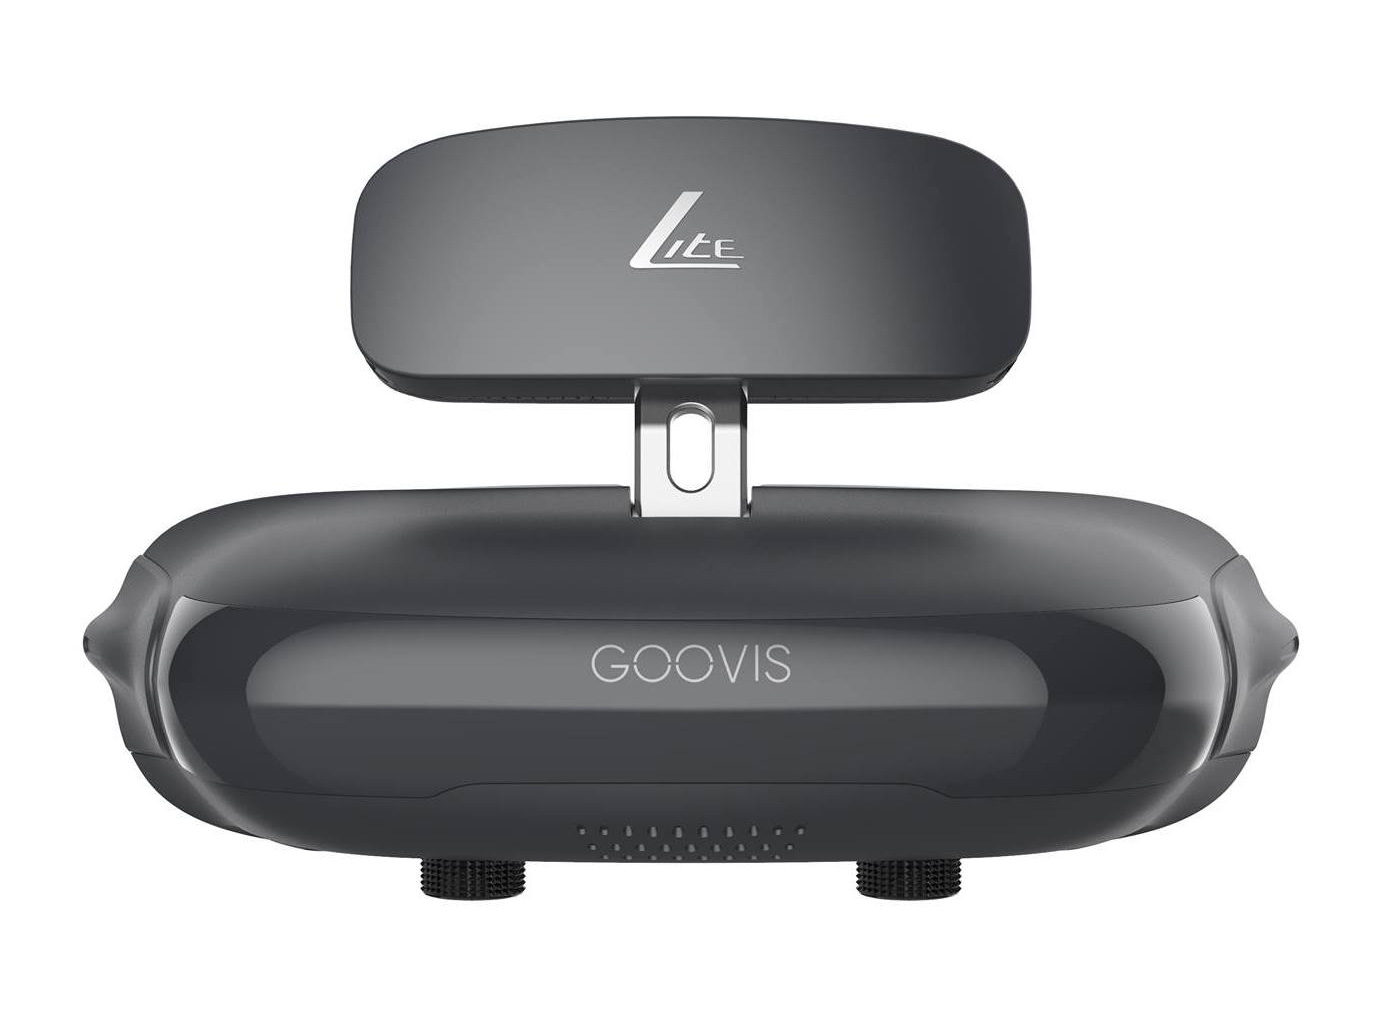 Goovis Lite Gives You 600 Virtual Inches at werd.com